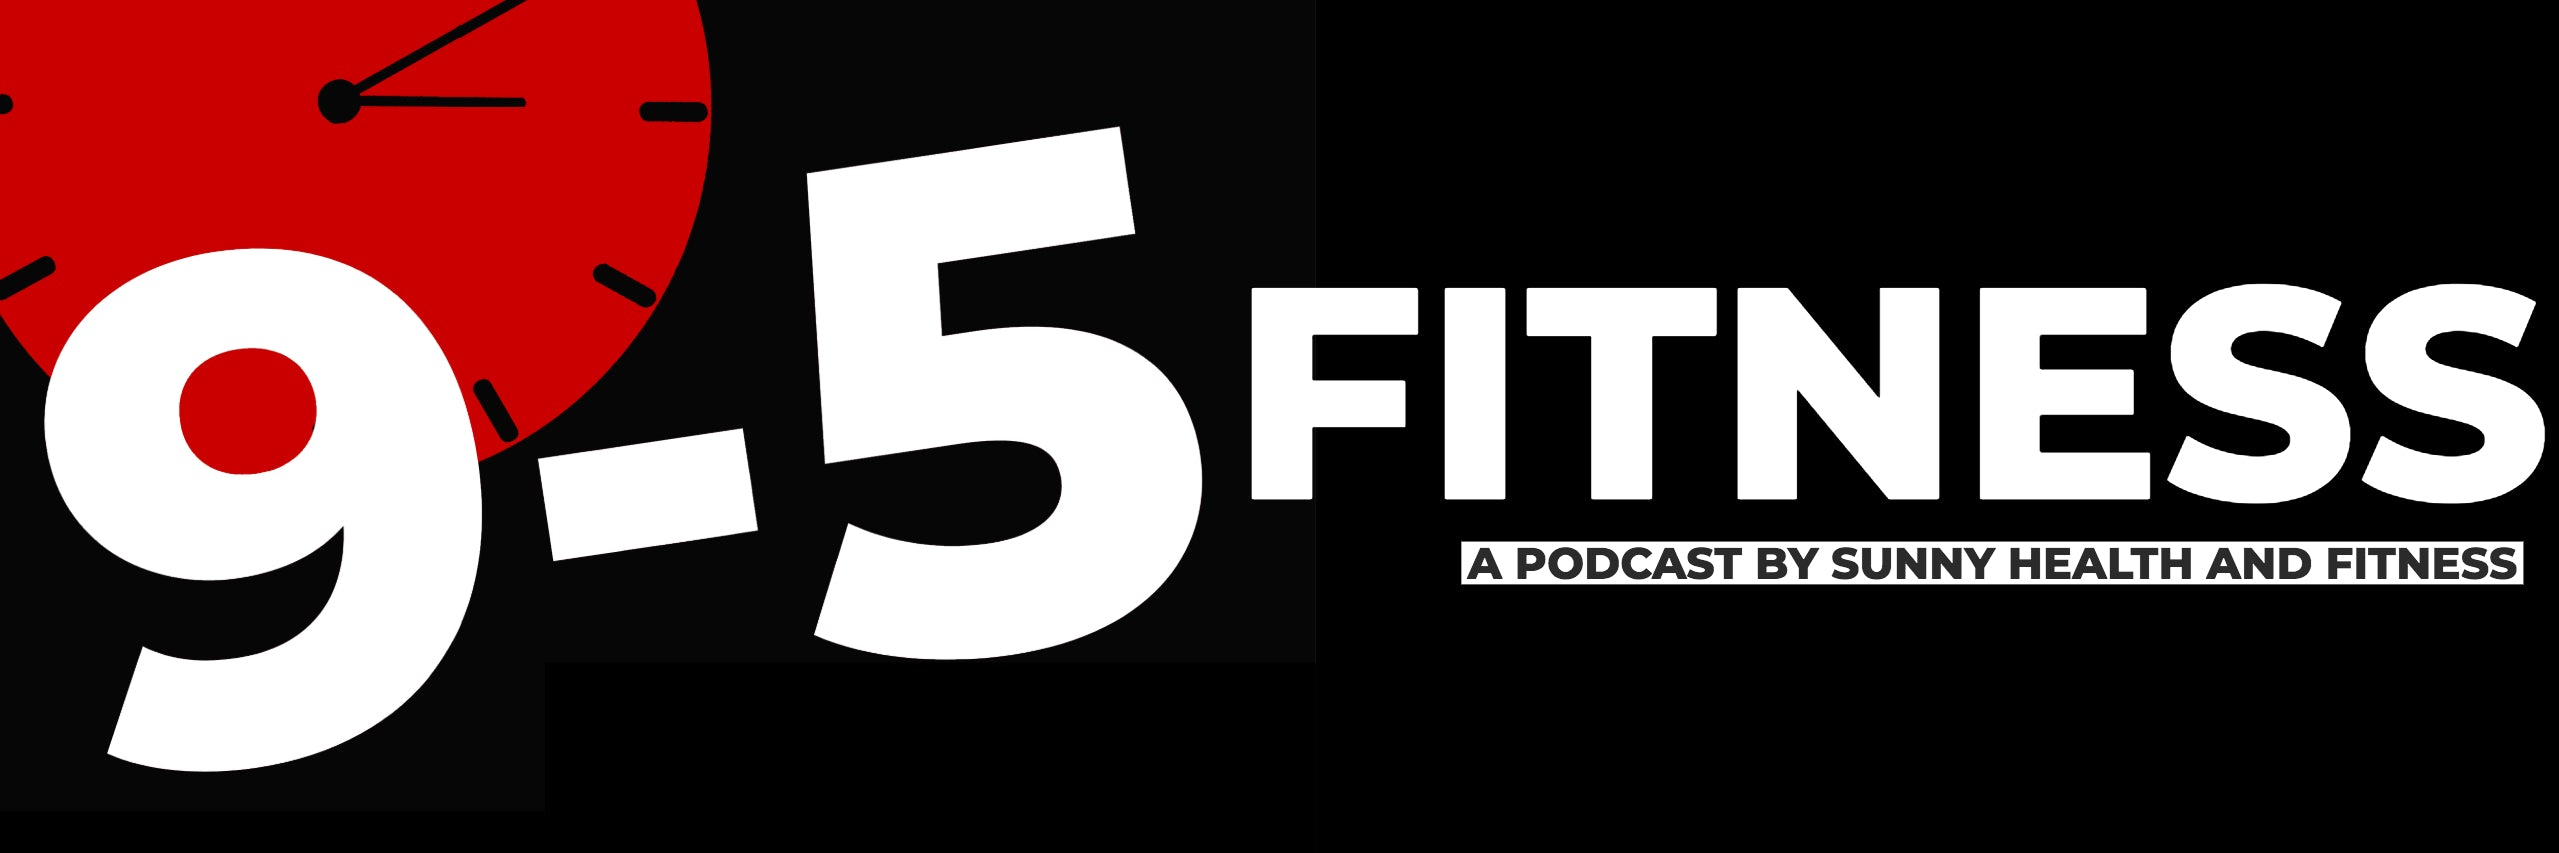 9 to 5 fitness podcast